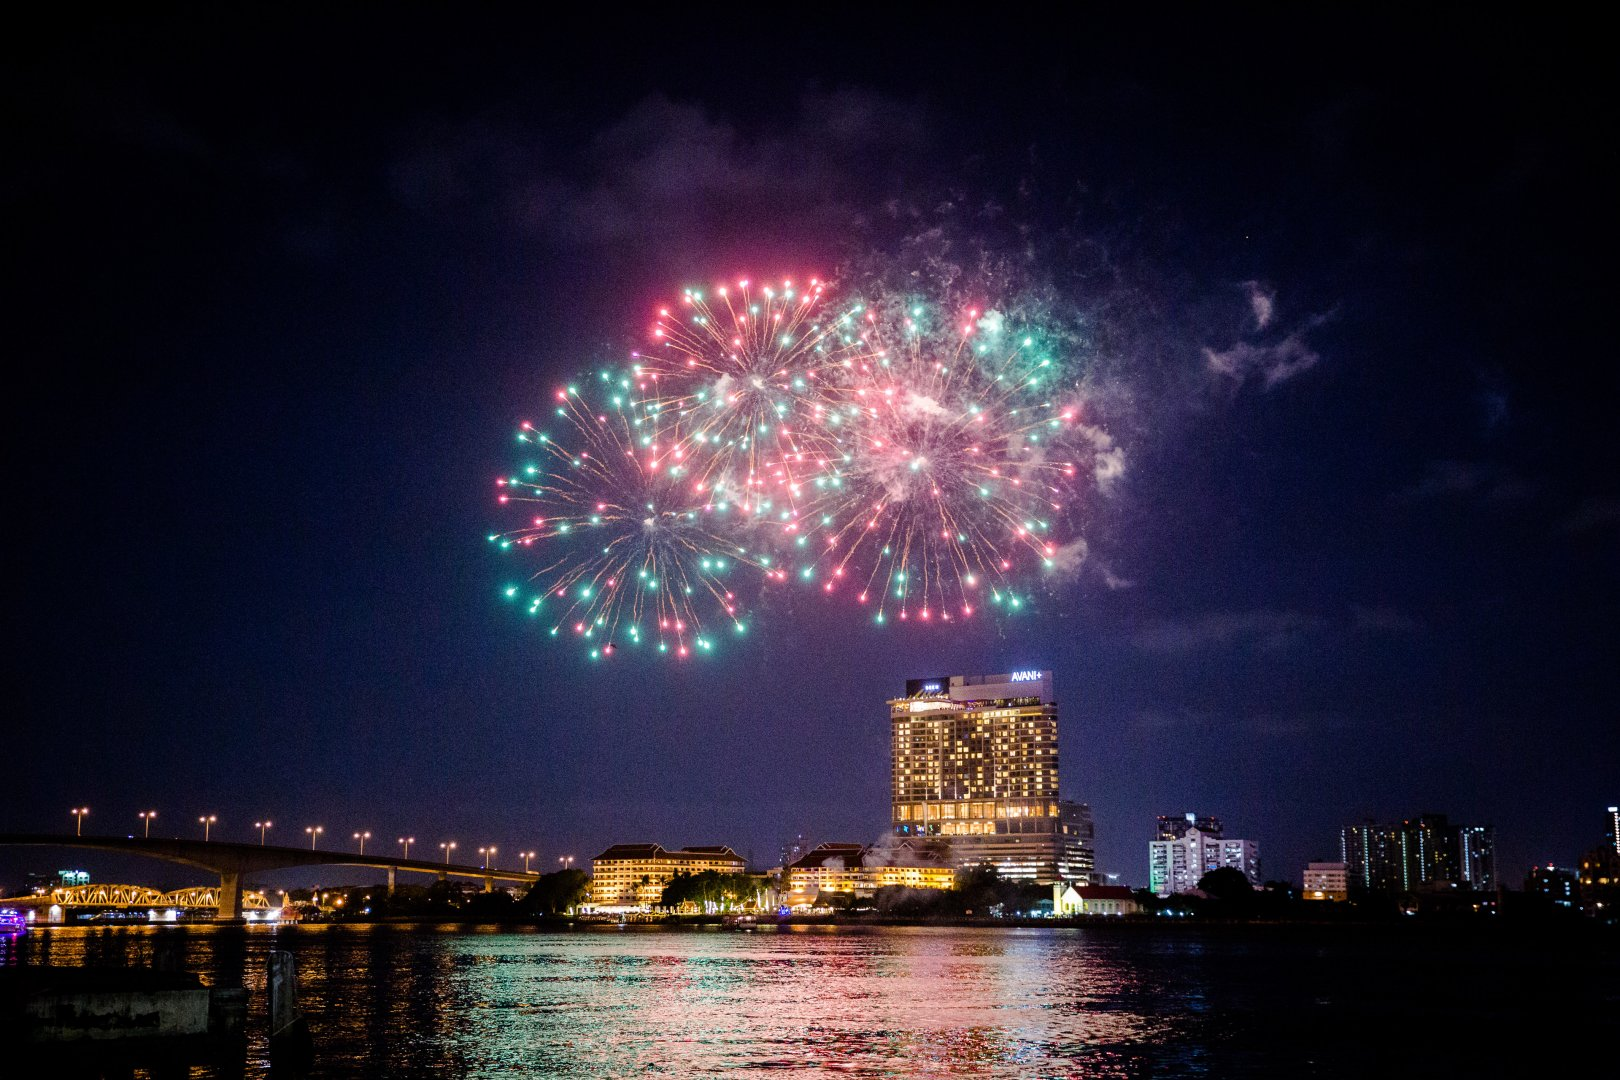 Fireworks Night Sky Metropolitan area City Landmark New Years Day Midnight Light Human settlement Cityscape Pink Event Urban area Lighting Reflection River Darkness Architecture Recreation Skyline Downtown Holiday New year's eve Metropolis New year Horizon Cloud Space Fête